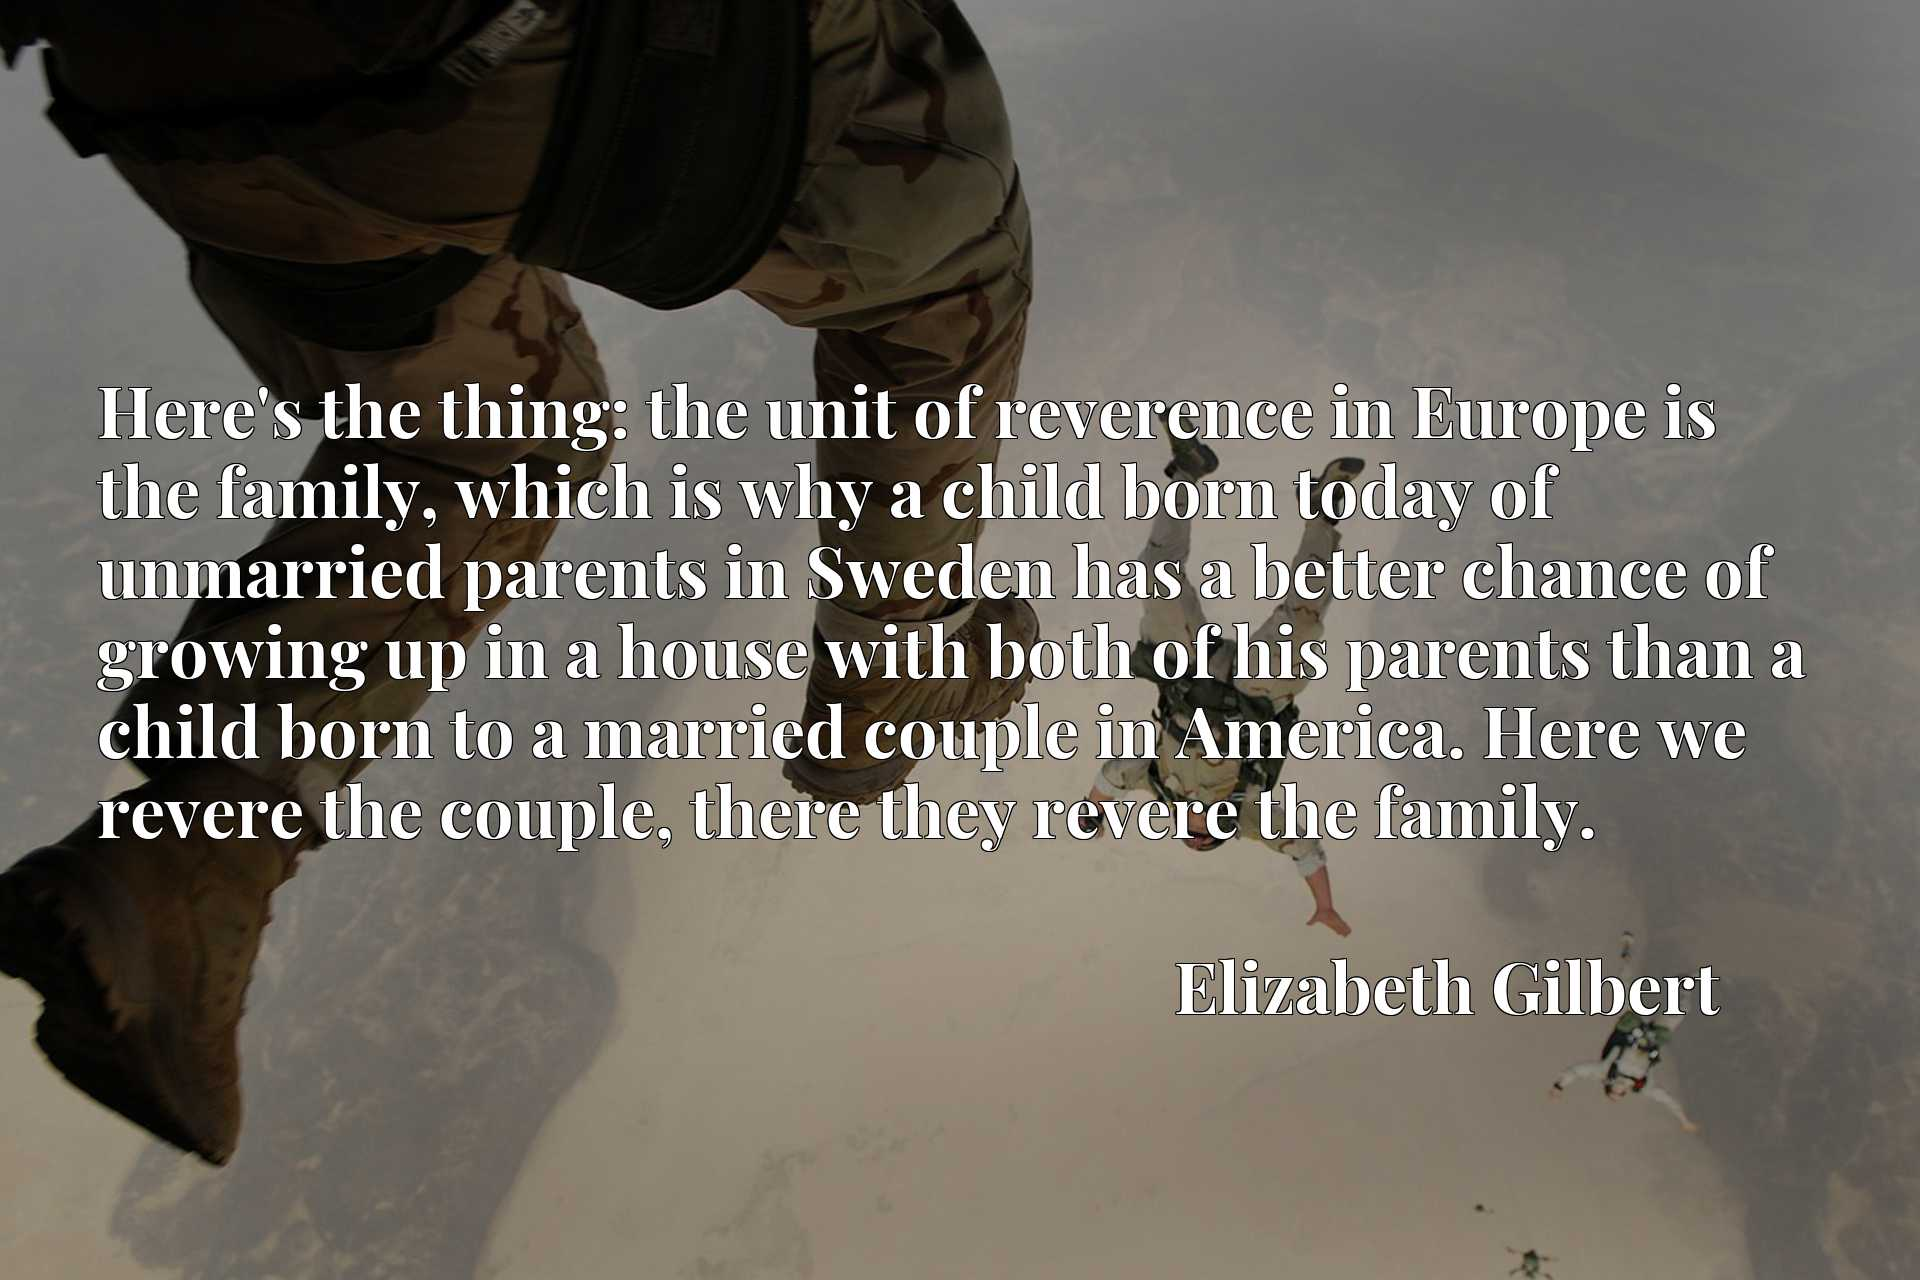 Here's the thing: the unit of reverence in Europe is the family, which is why a child born today of unmarried parents in Sweden has a better chance of growing up in a house with both of his parents than a child born to a married couple in America. Here we revere the couple, there they revere the family.